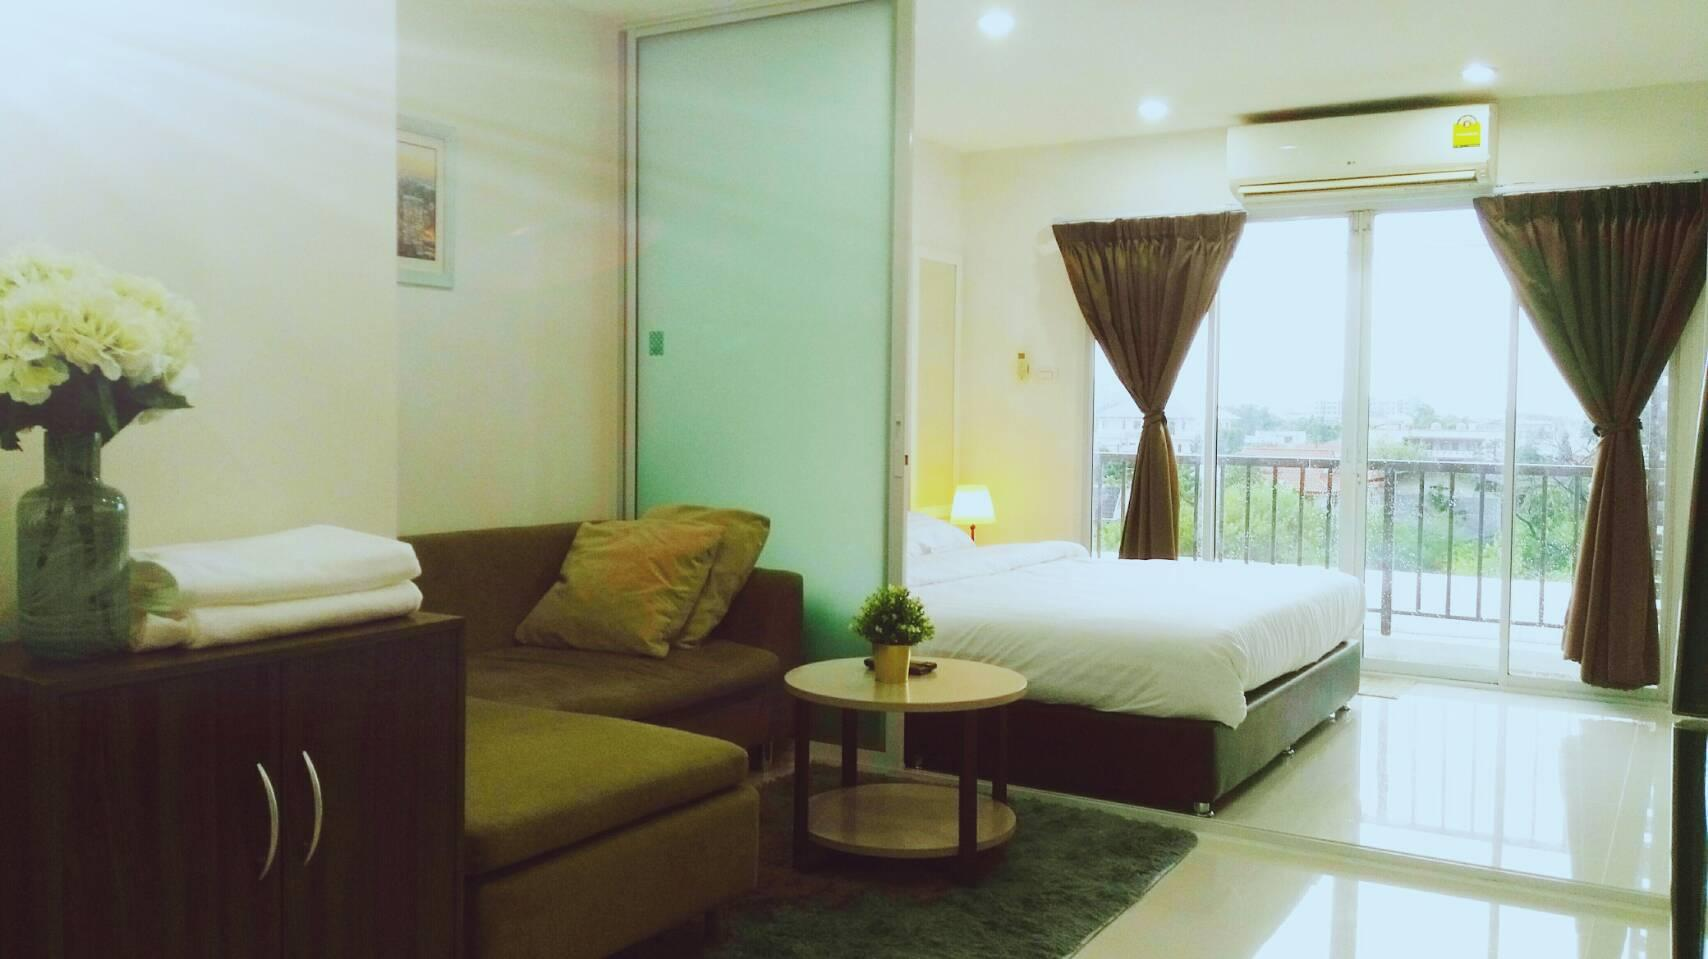 No.77 Large Studio Room And Swimming Pool@S101